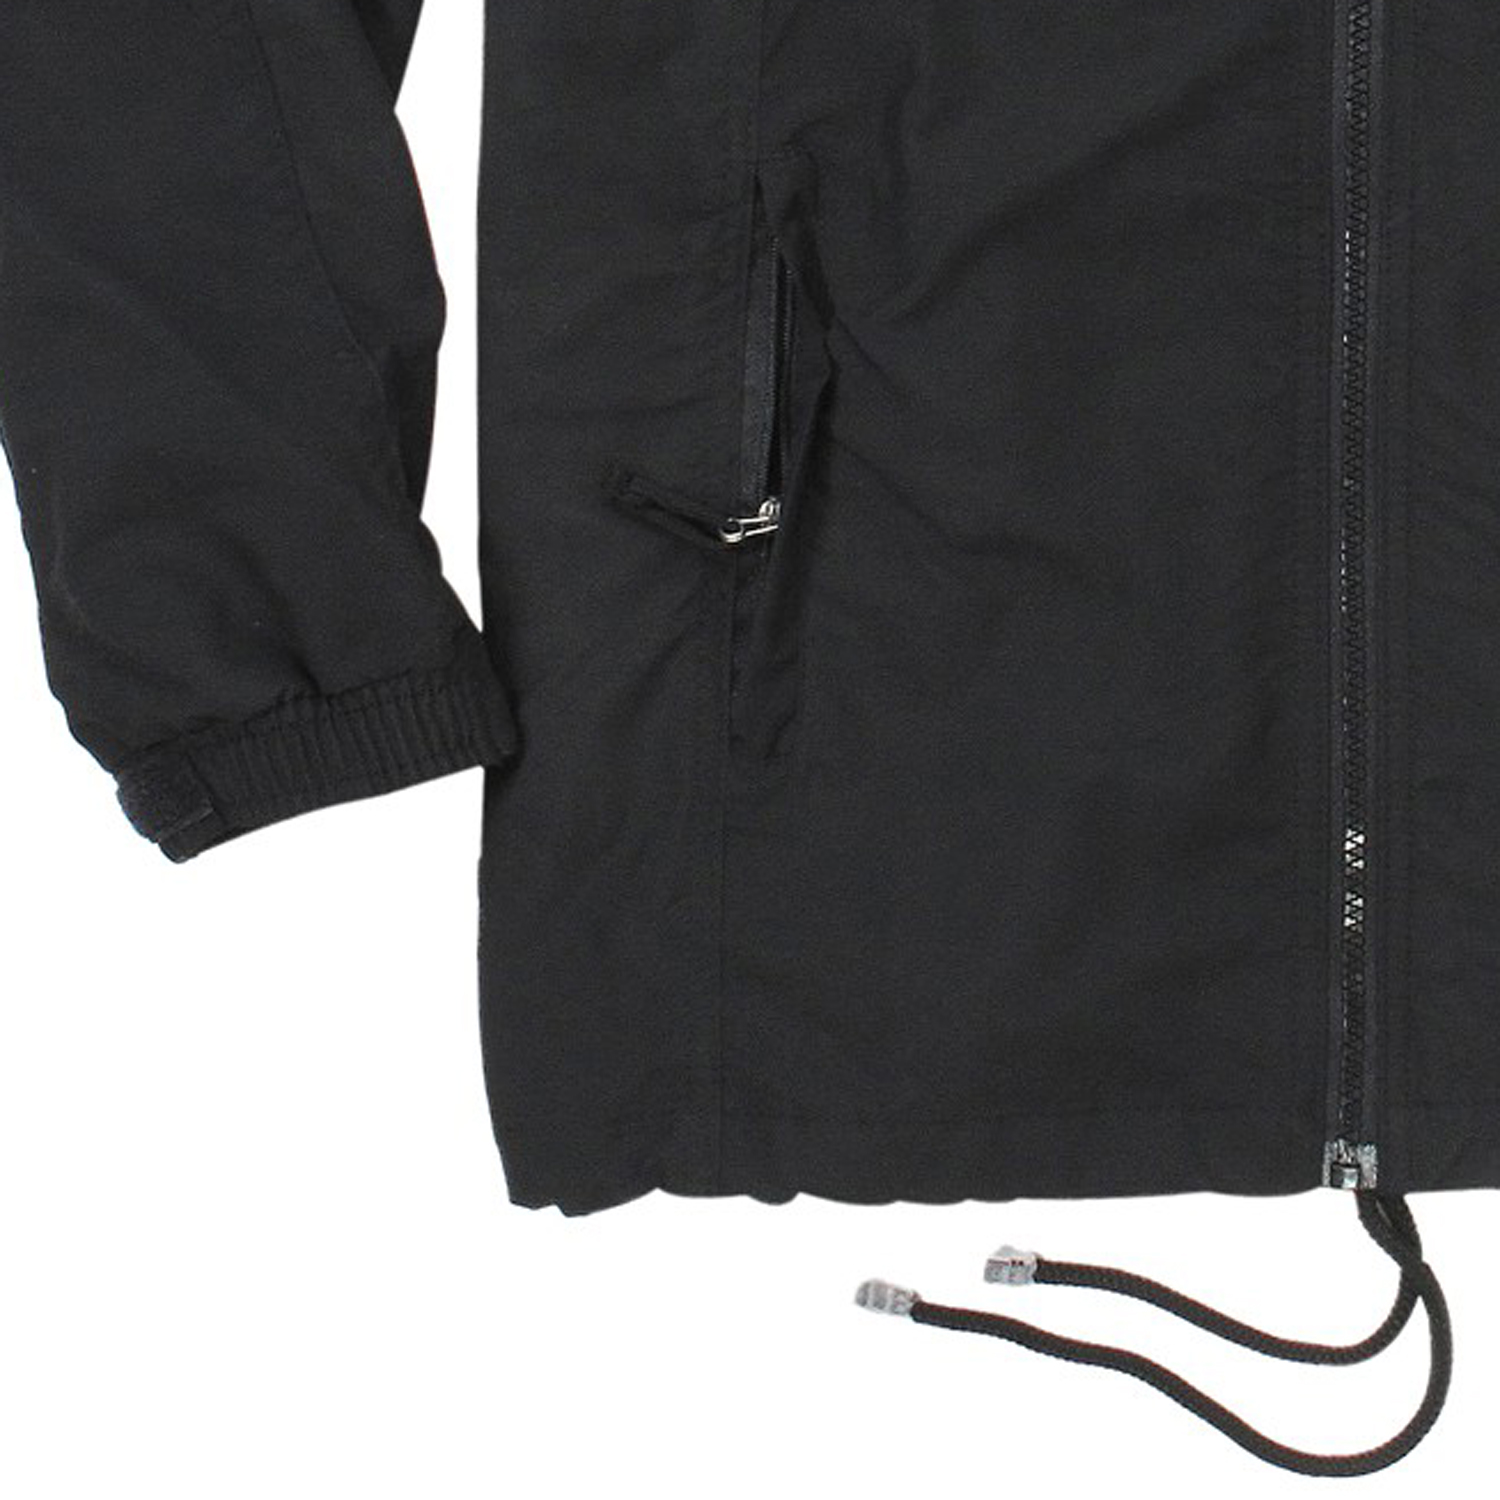 Detail Image to Micro fitness jacket in black by Ahorn Sportswear up to oversize 10XL